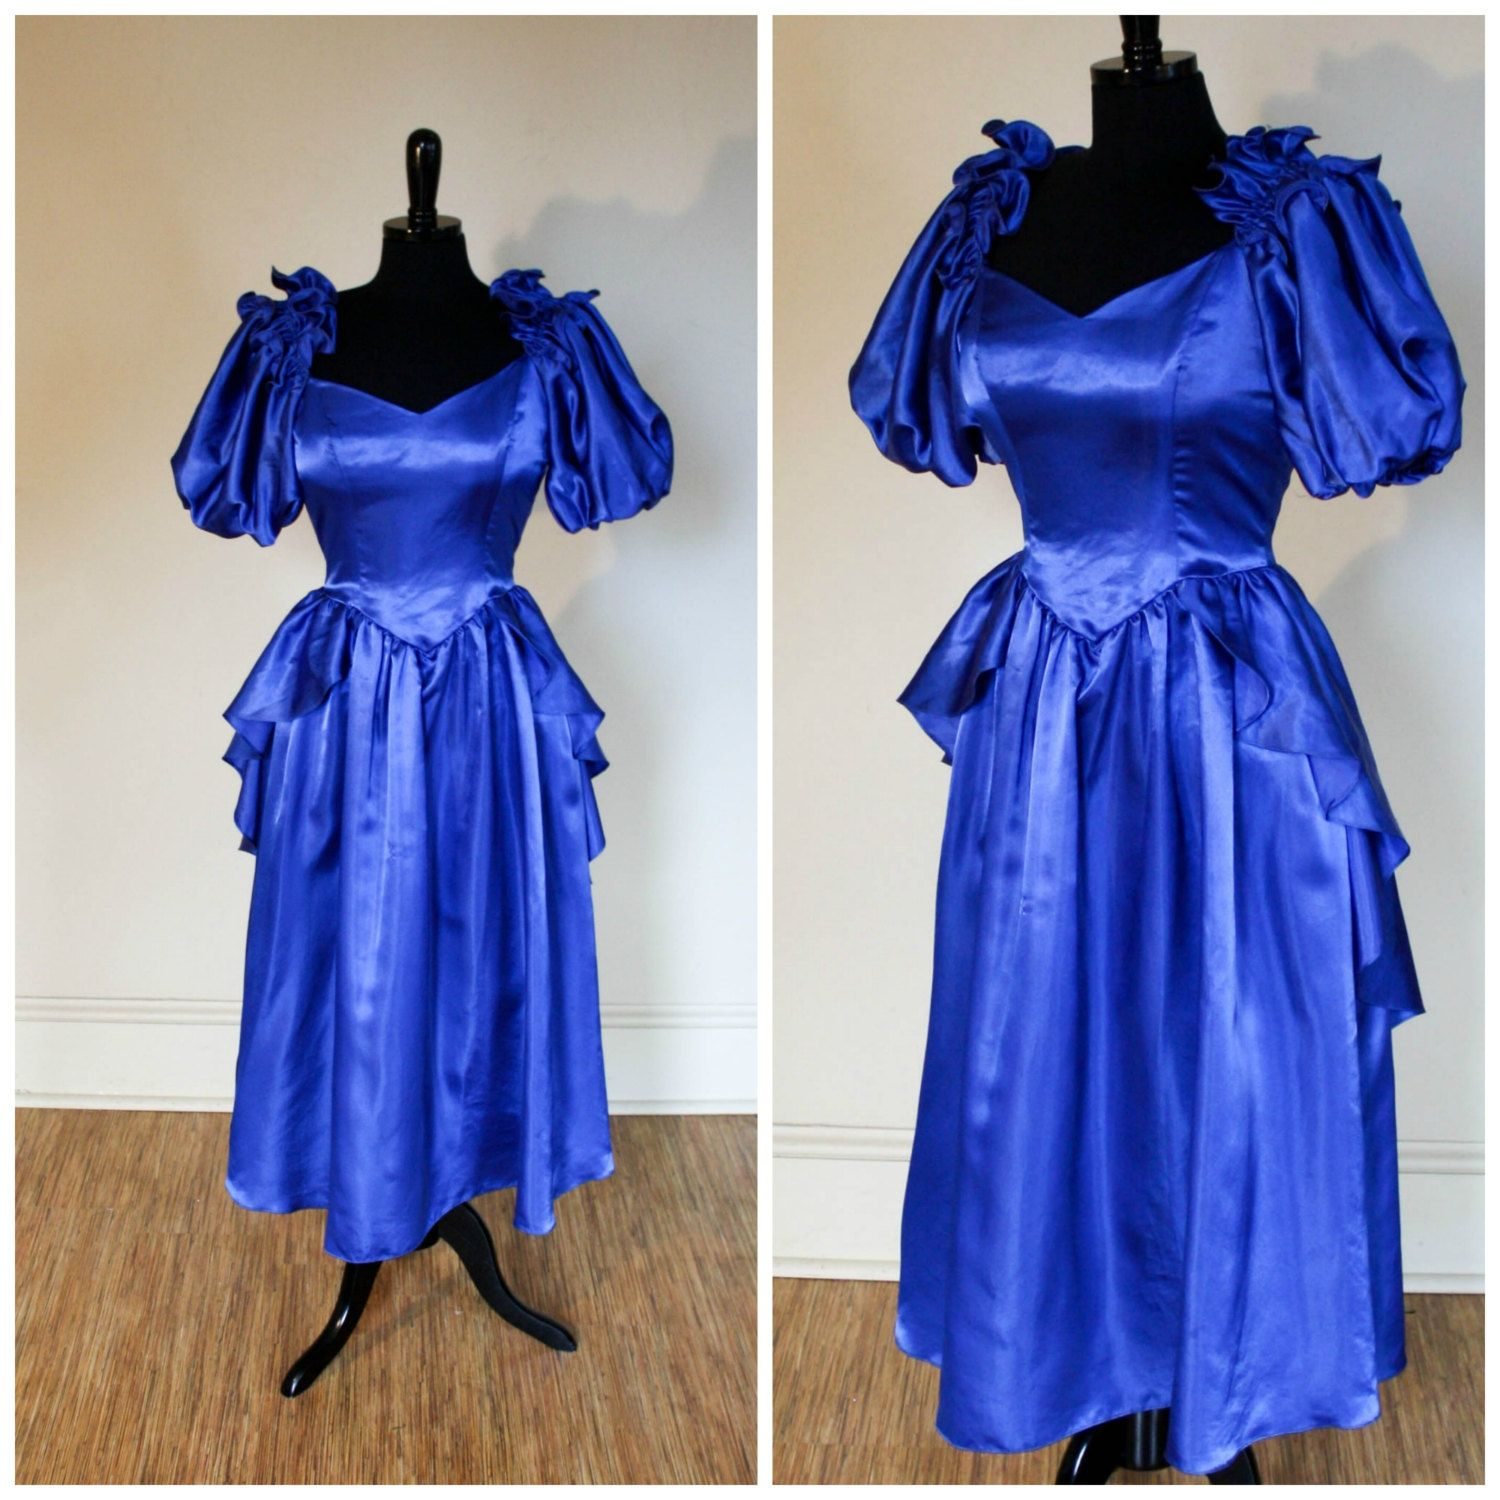 Vintage 1980s Royal Blue Prom Dress Gown Peplum Puff